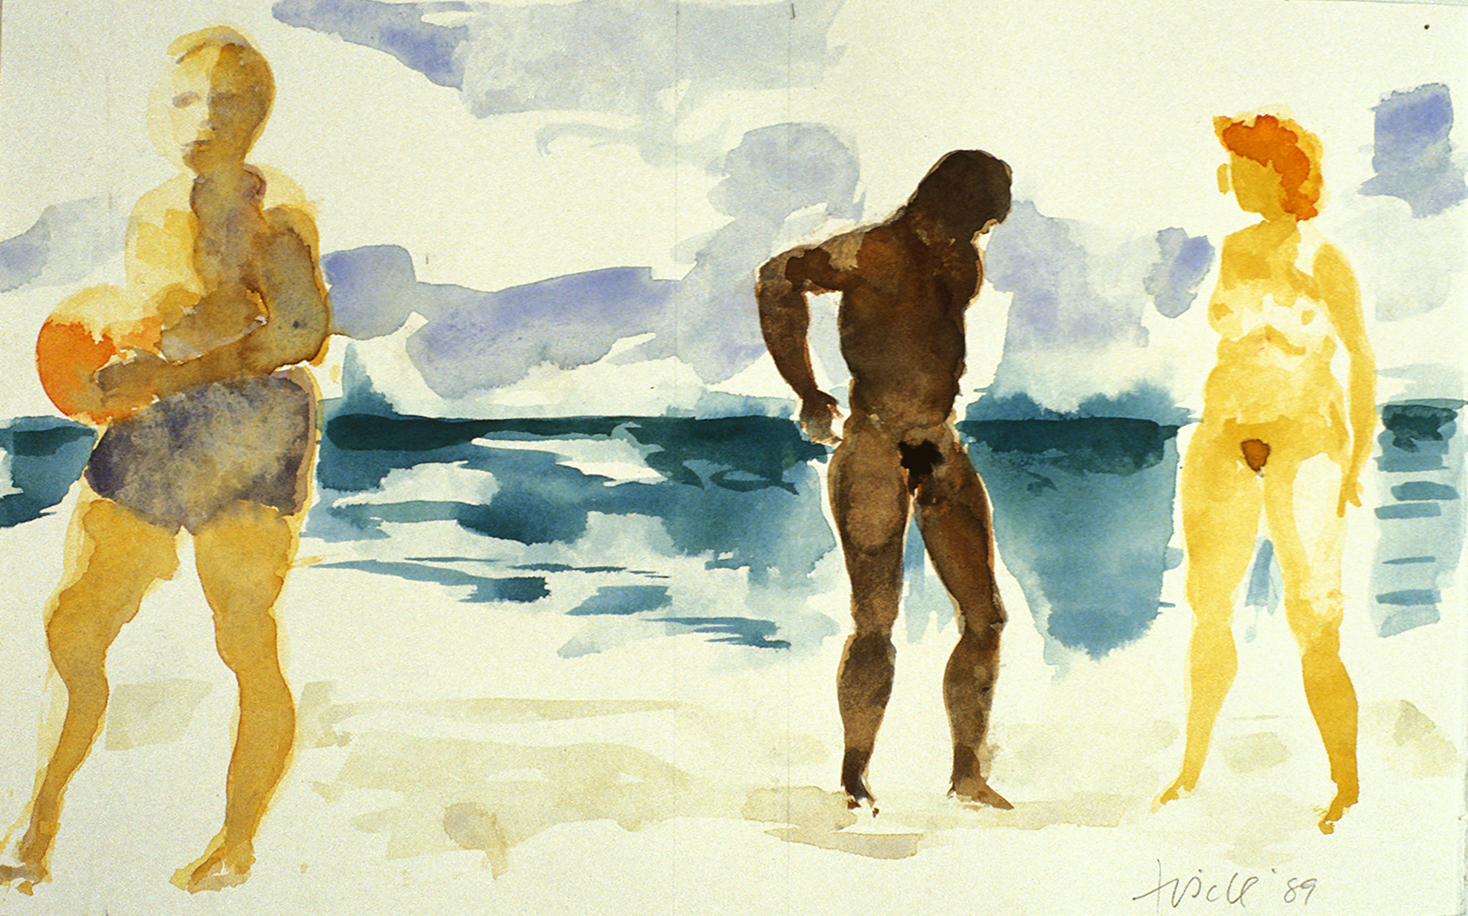 """Untitled, 1988, watercolor on paper, 9"""" x 14.5"""""""